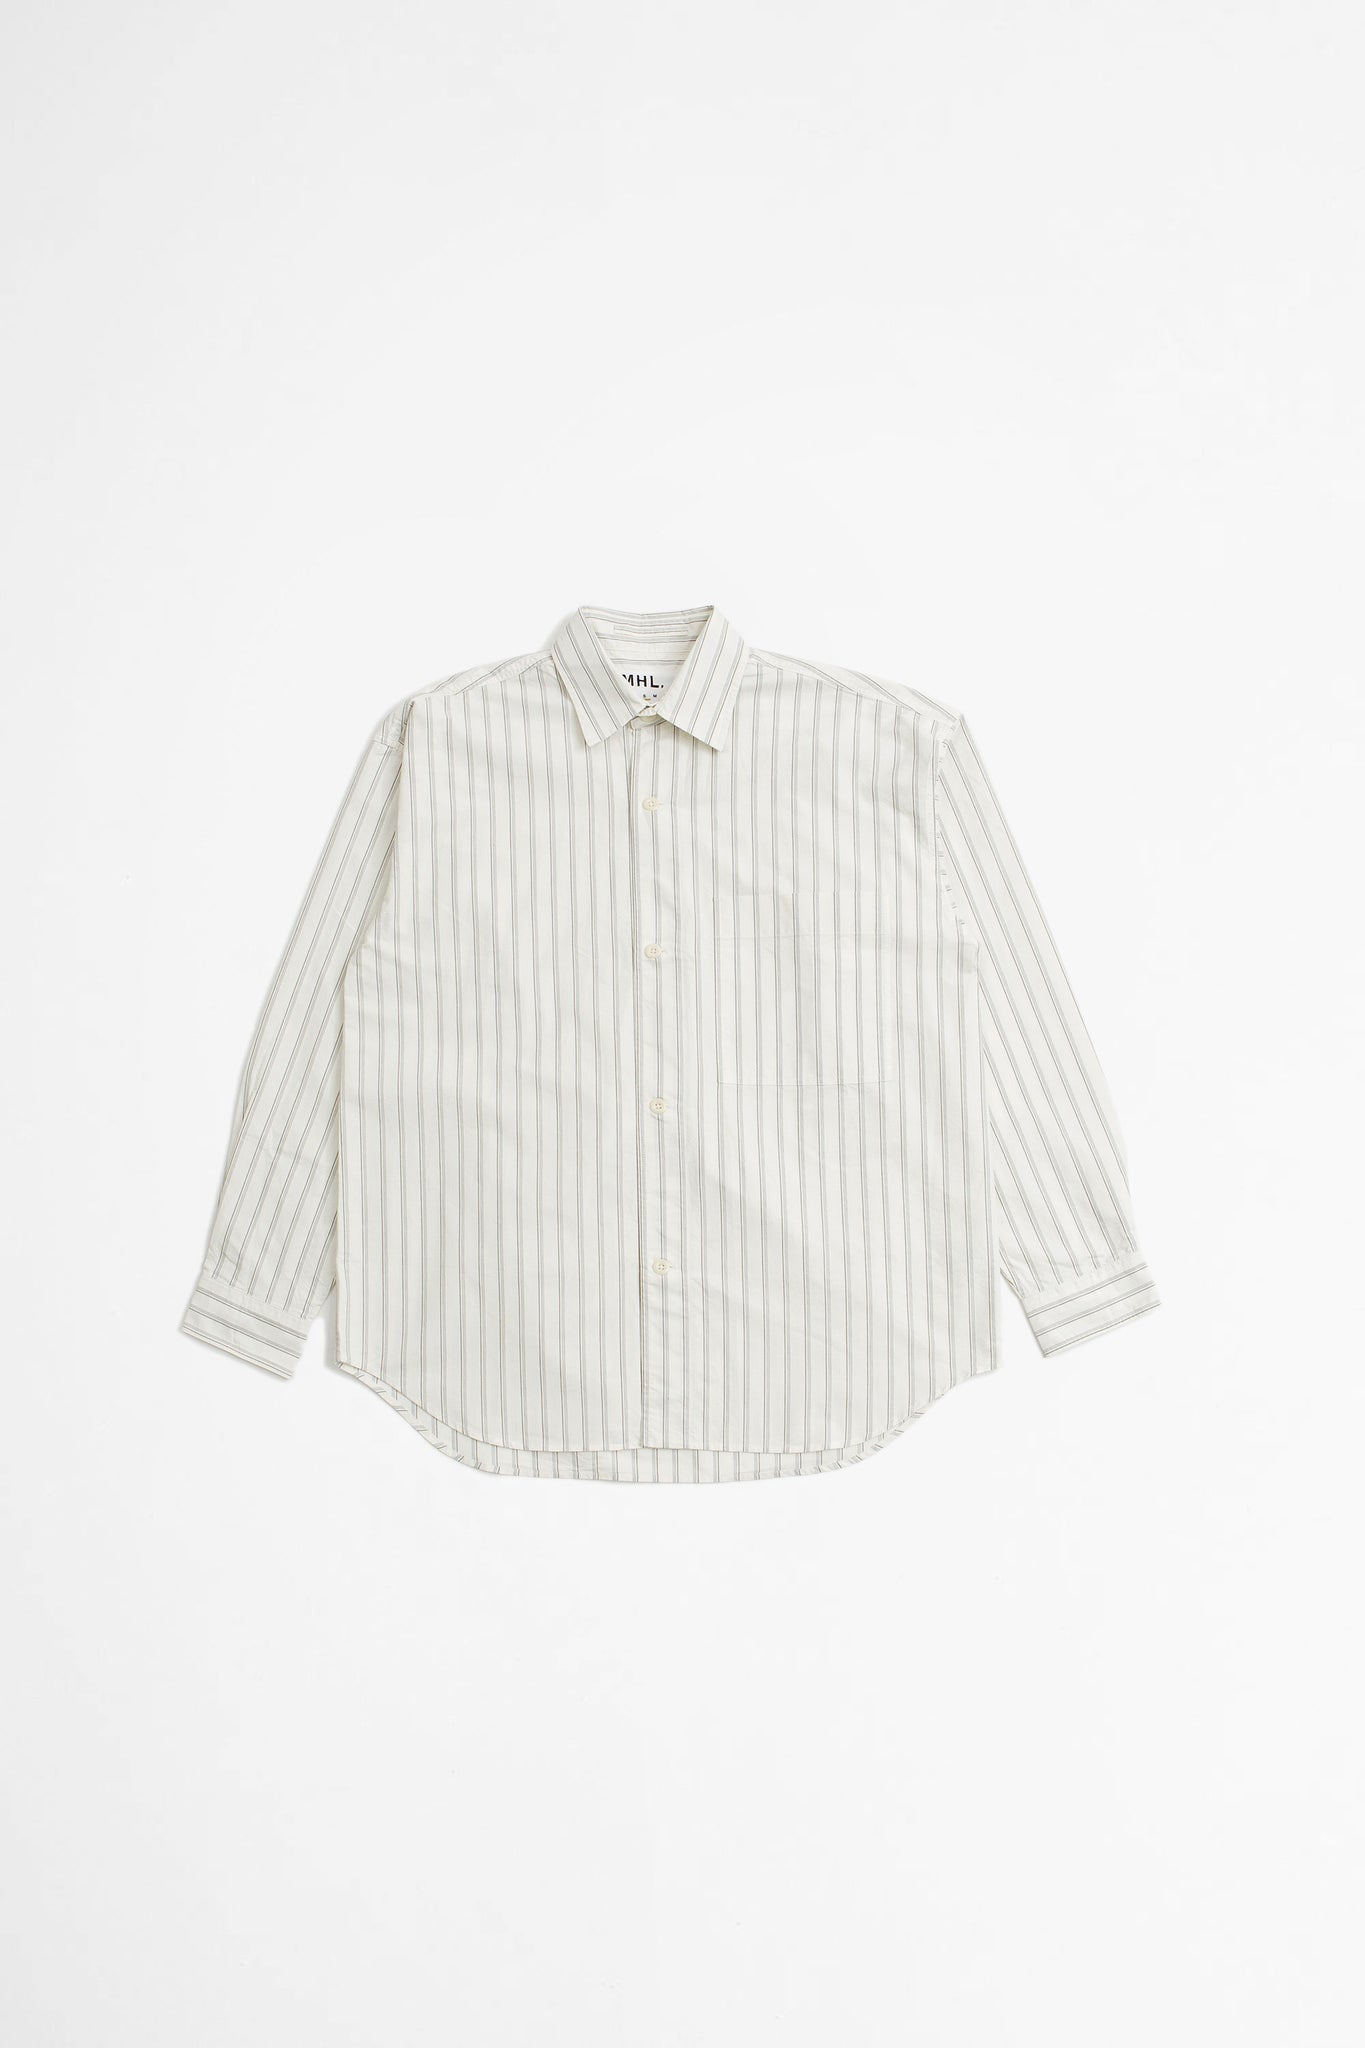 Oversized work shirt 4 line stripe ecru/black